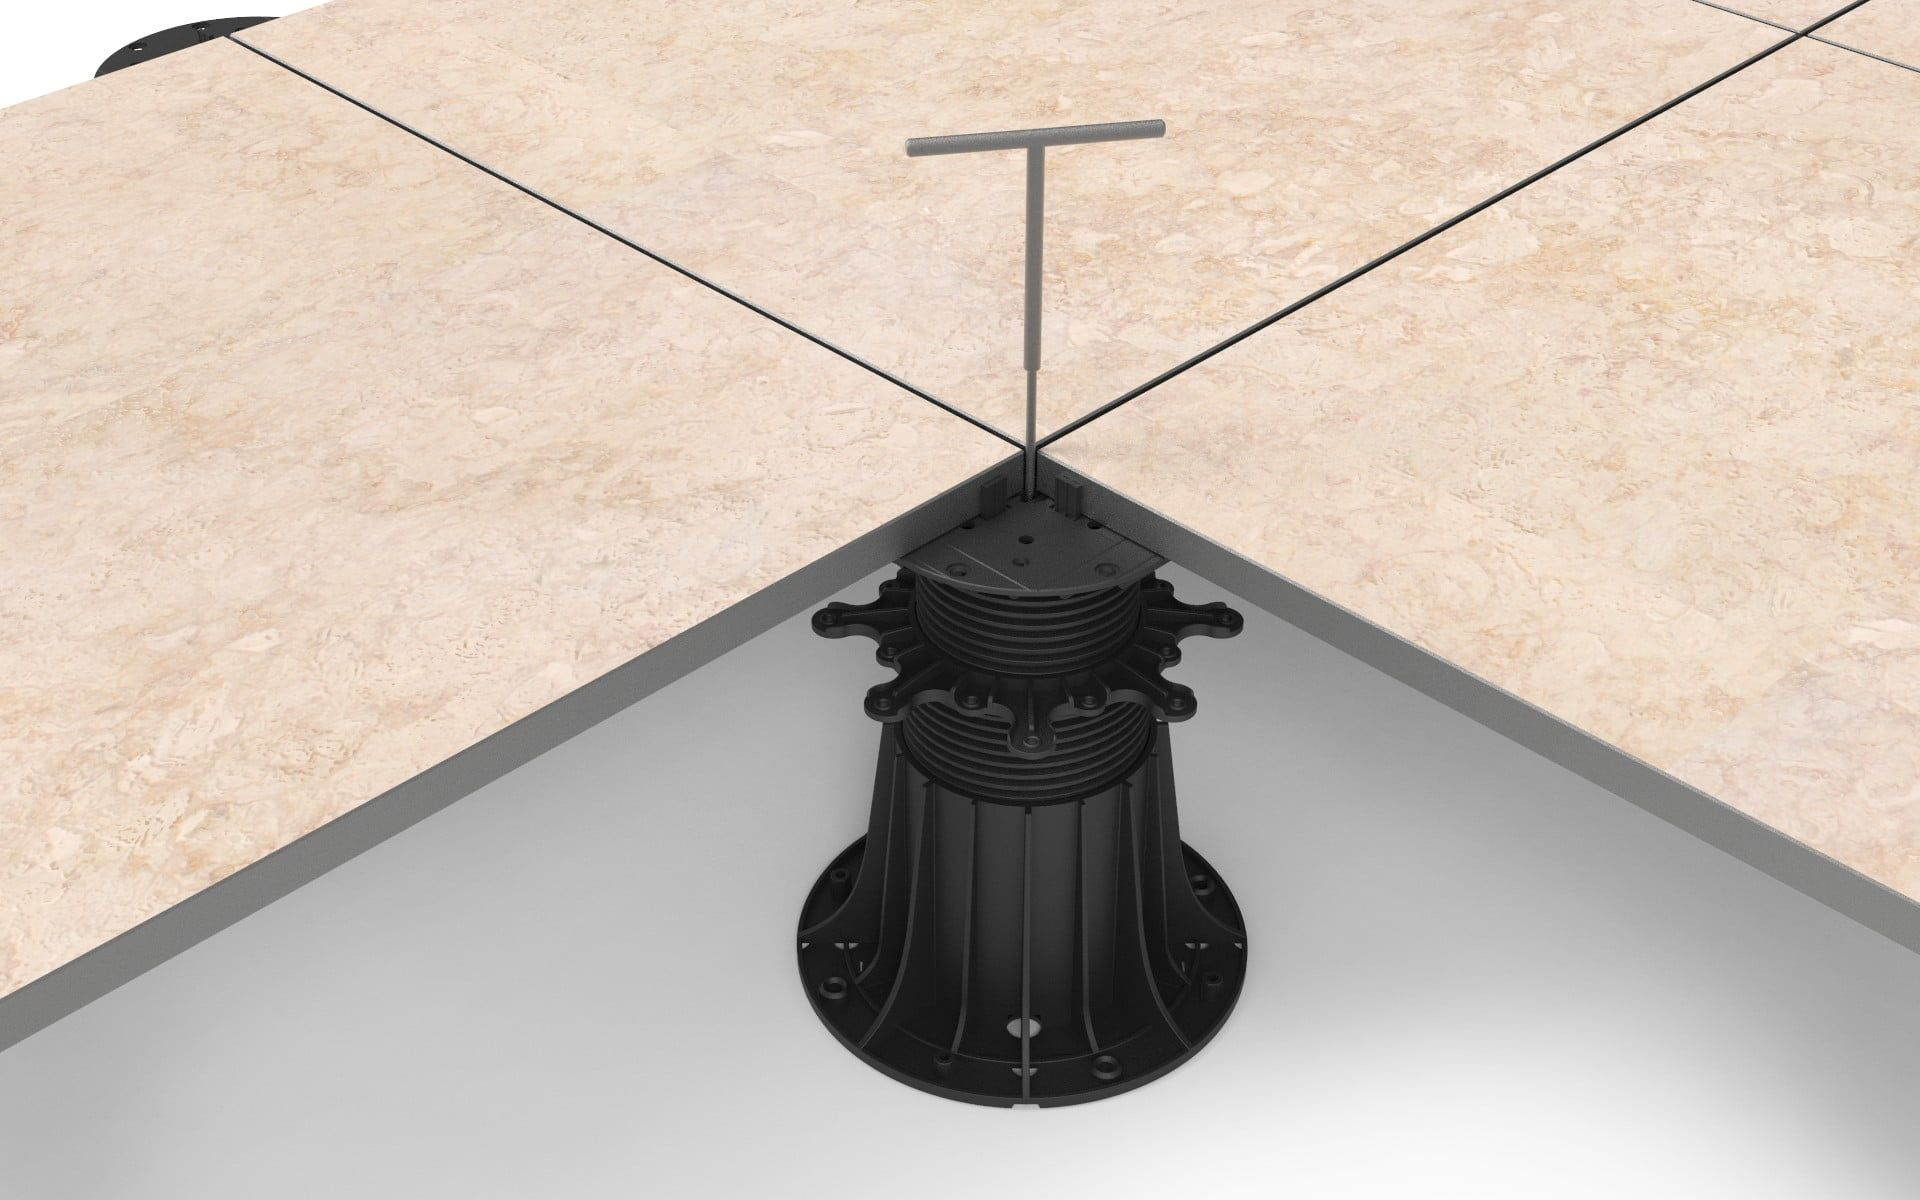 height adjustment of the tiles on the adjustable pedestals after the terrace is installed